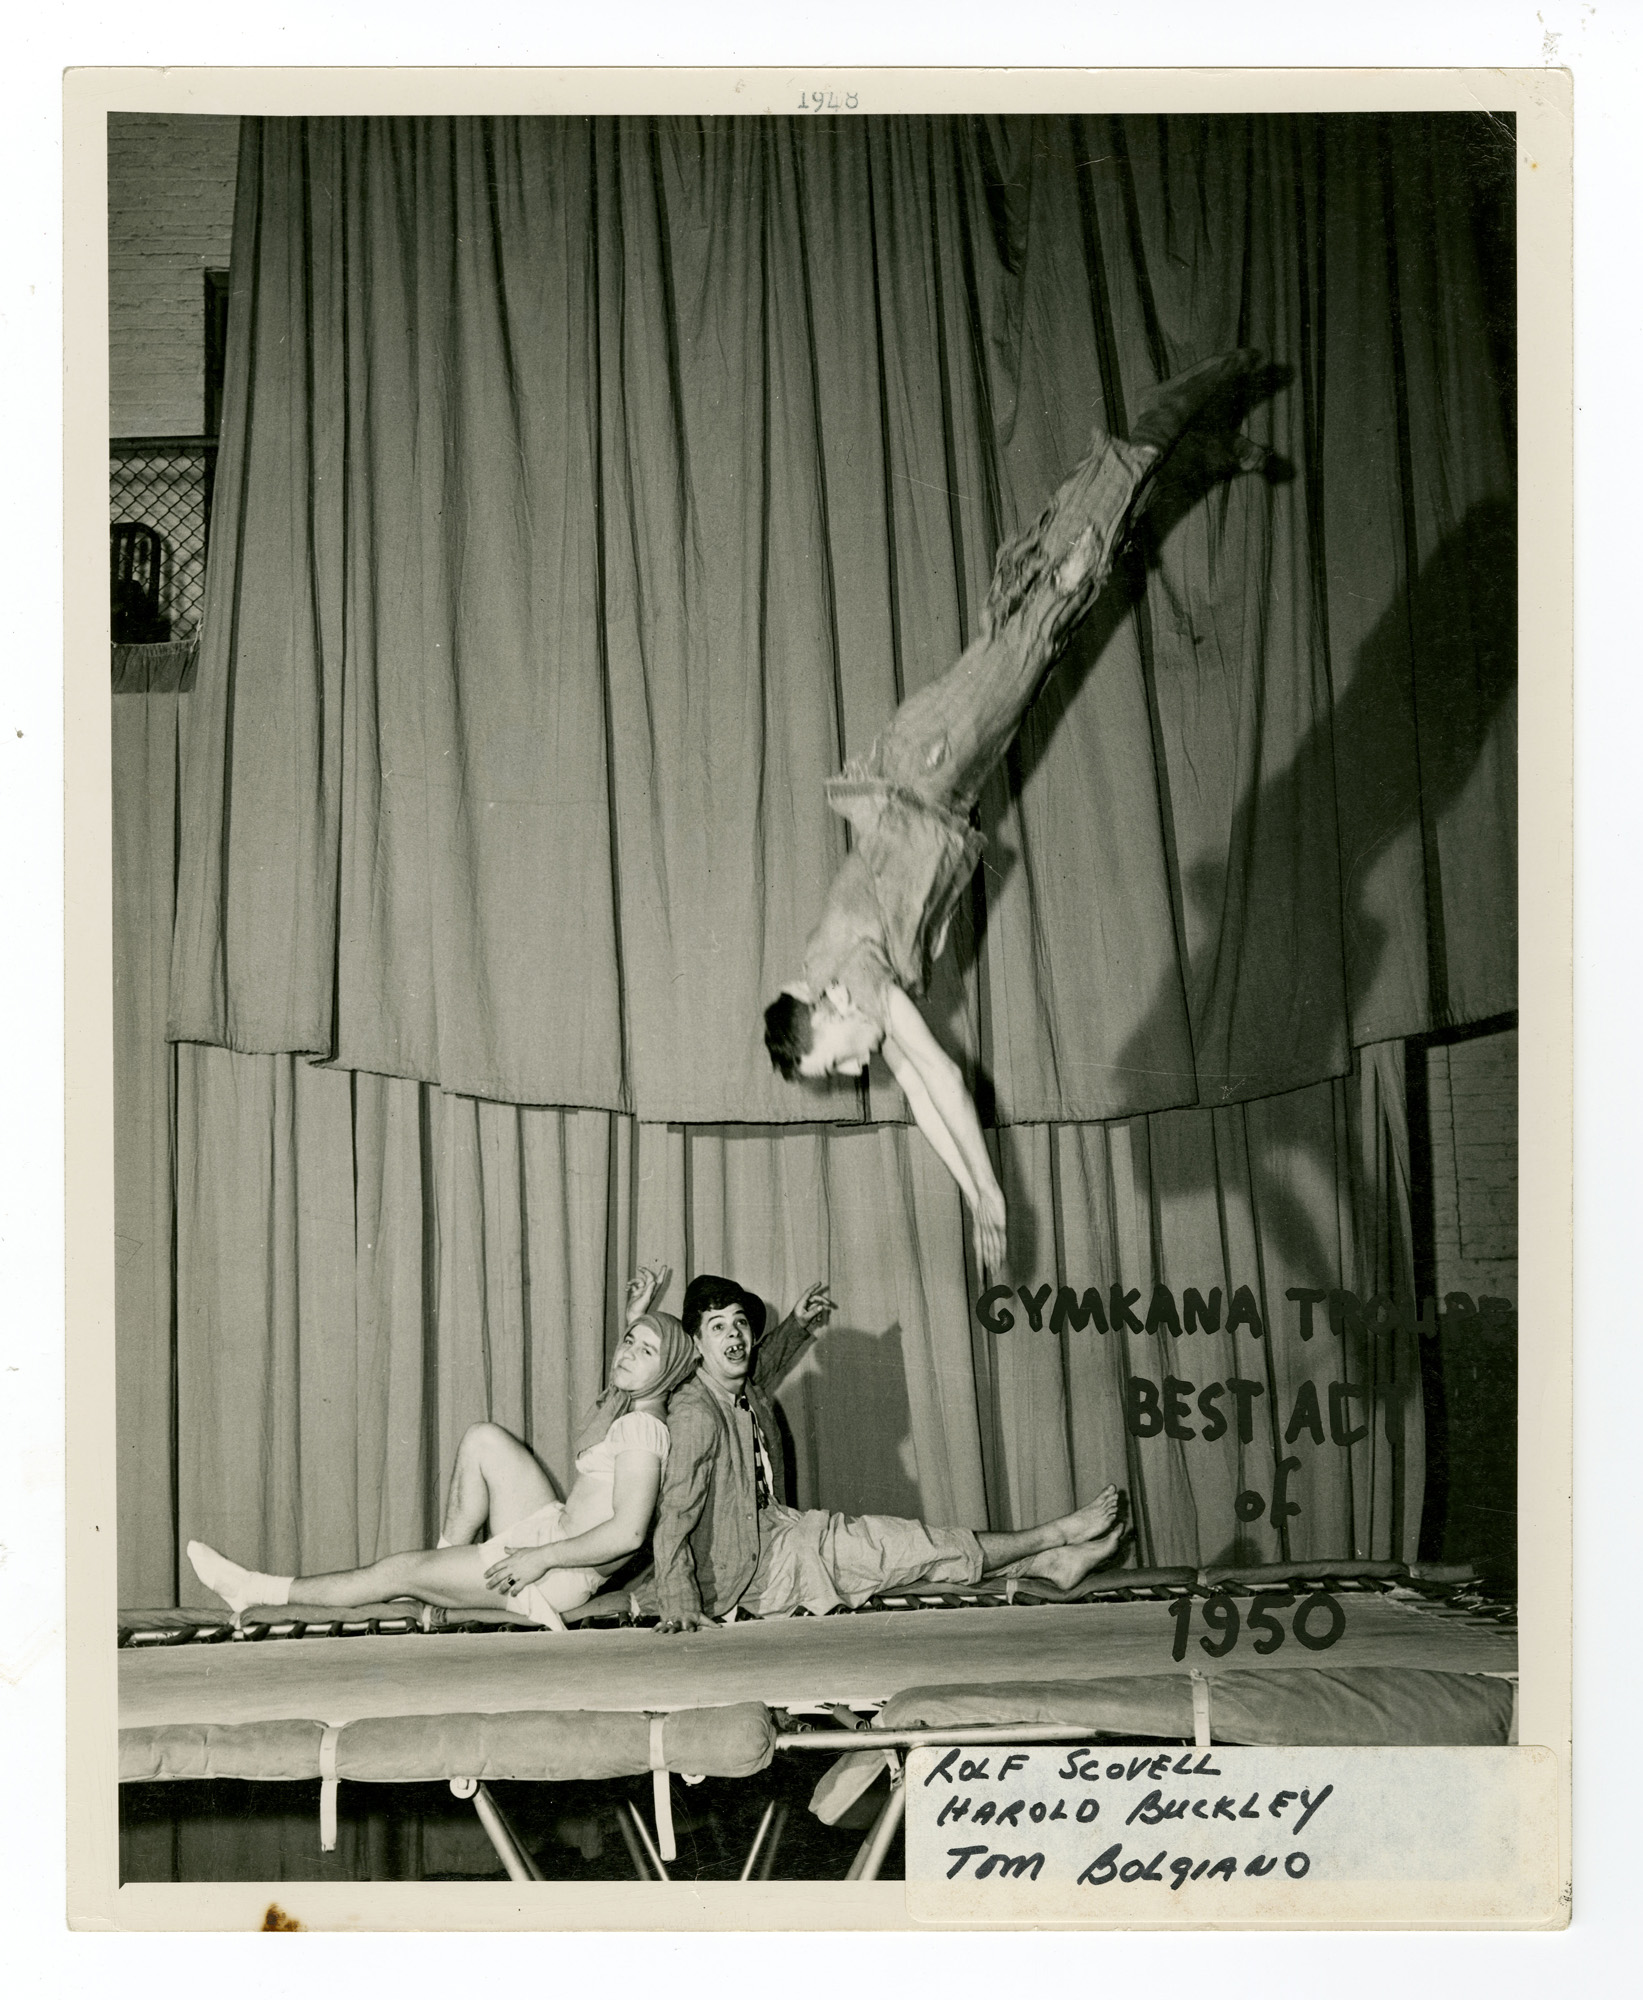 1950 - The Aristocrats of the Trampoline